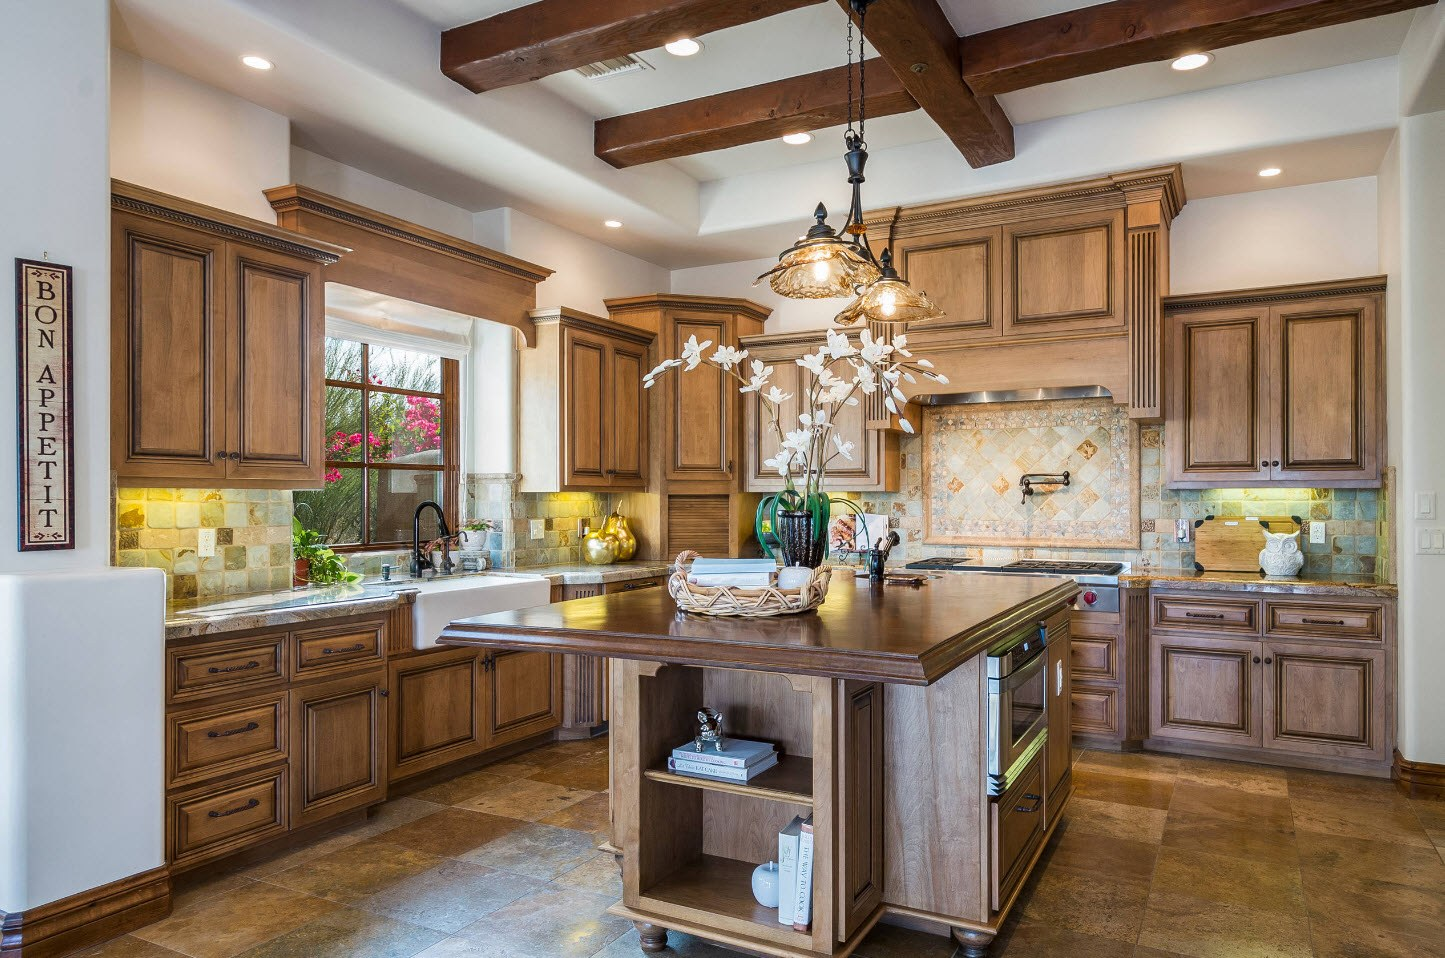 Apparent Mediterranean style at the kitchen: warm colors, wooden trimming and a lot of functional space